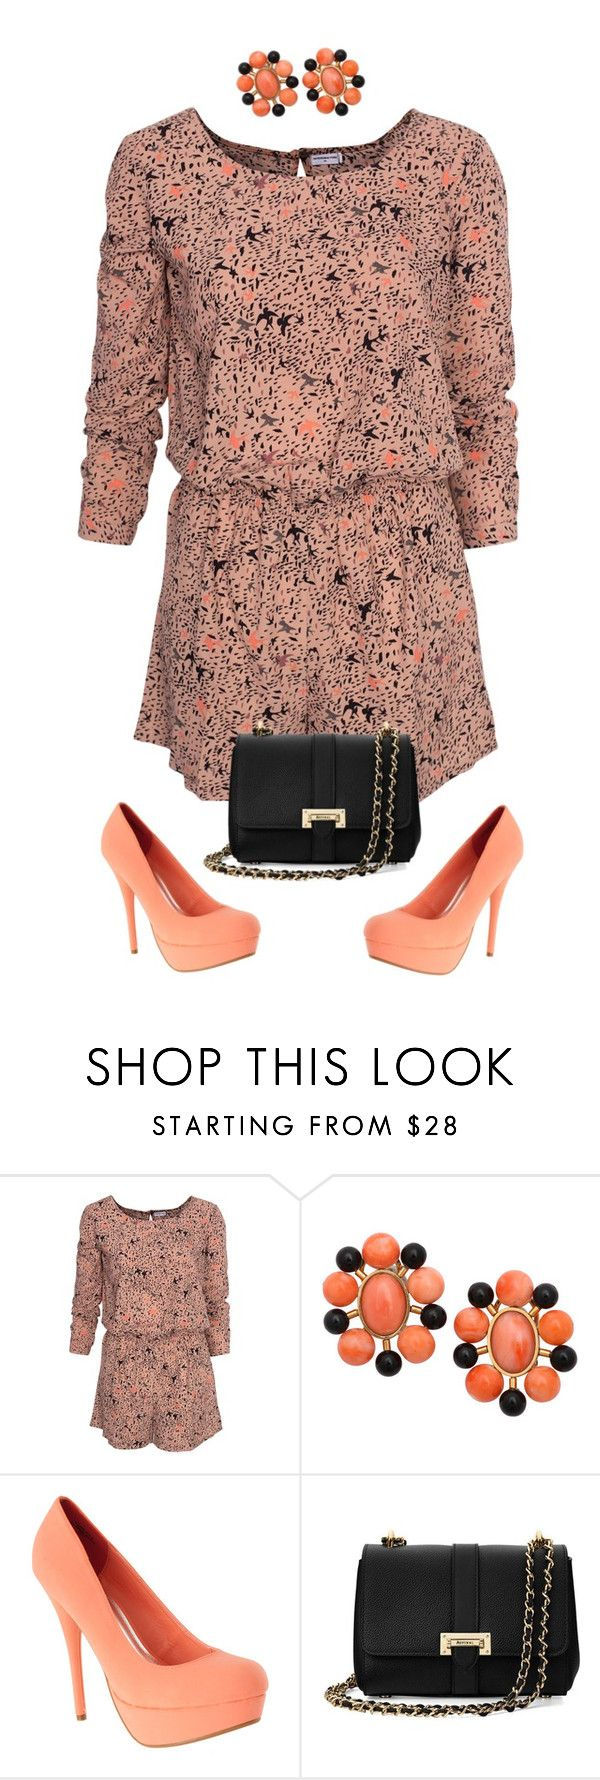 """Untitled #1348"" by ruru833 ❤ liked on Polyvore featuring Jacqueline De Yong and Aspinal of London"